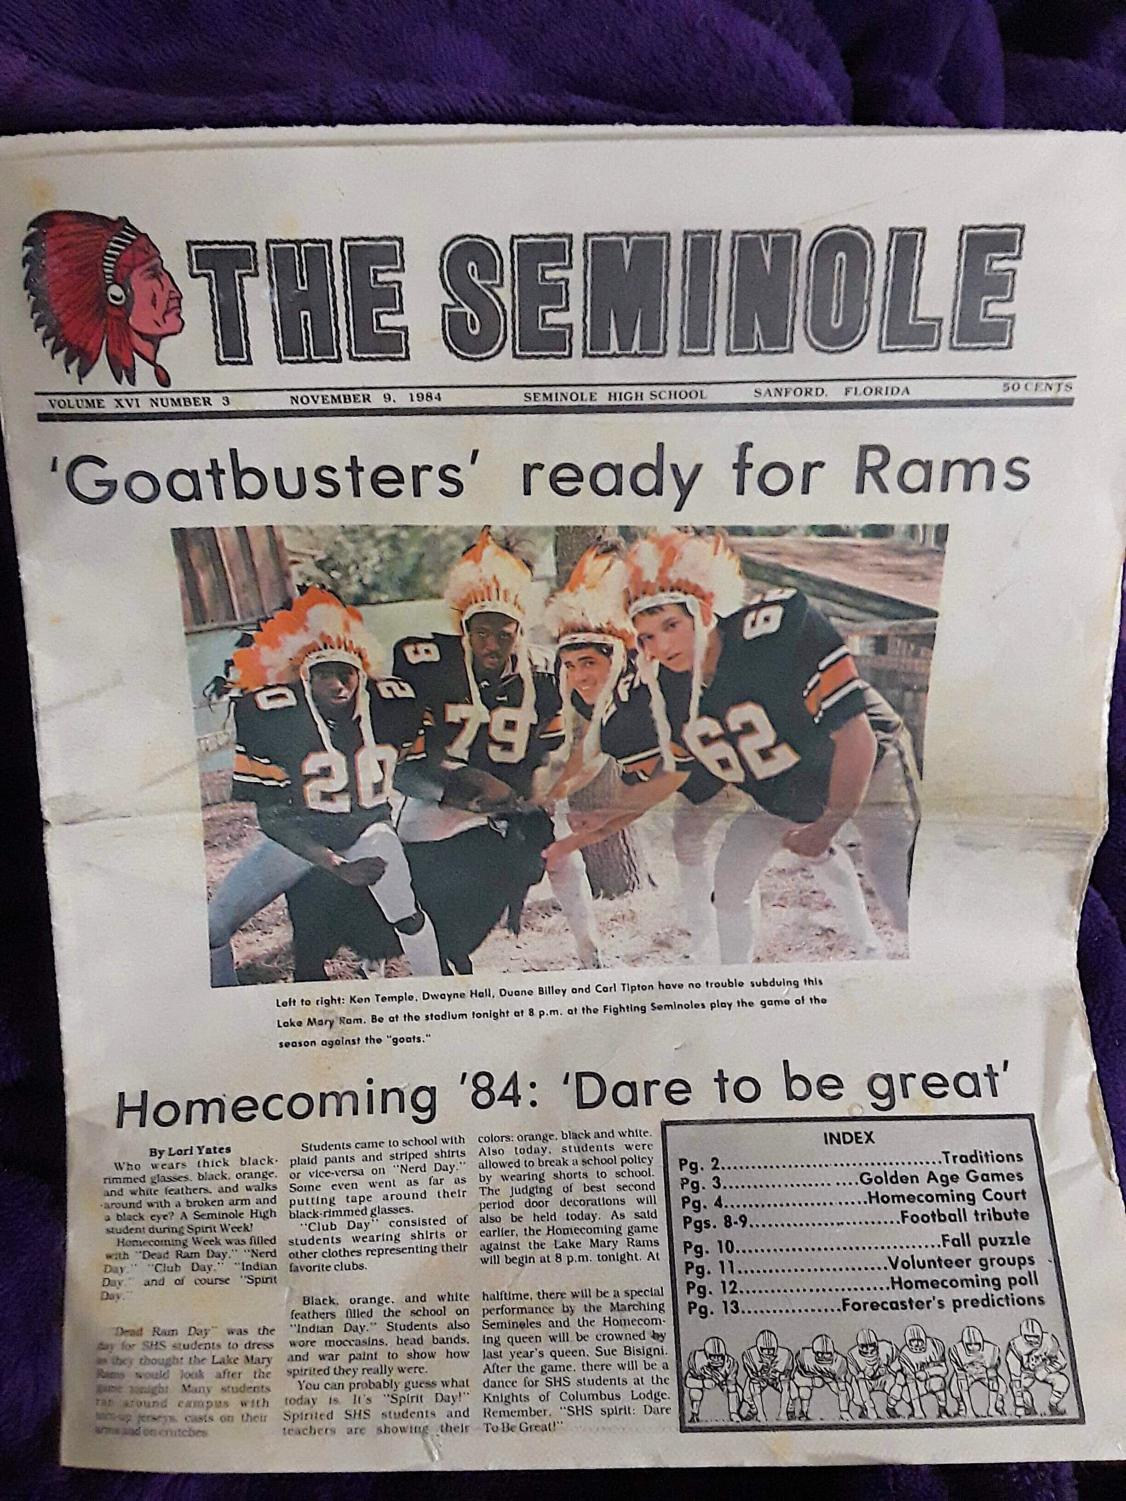 The Seminole Newspaper dates back to 1922.